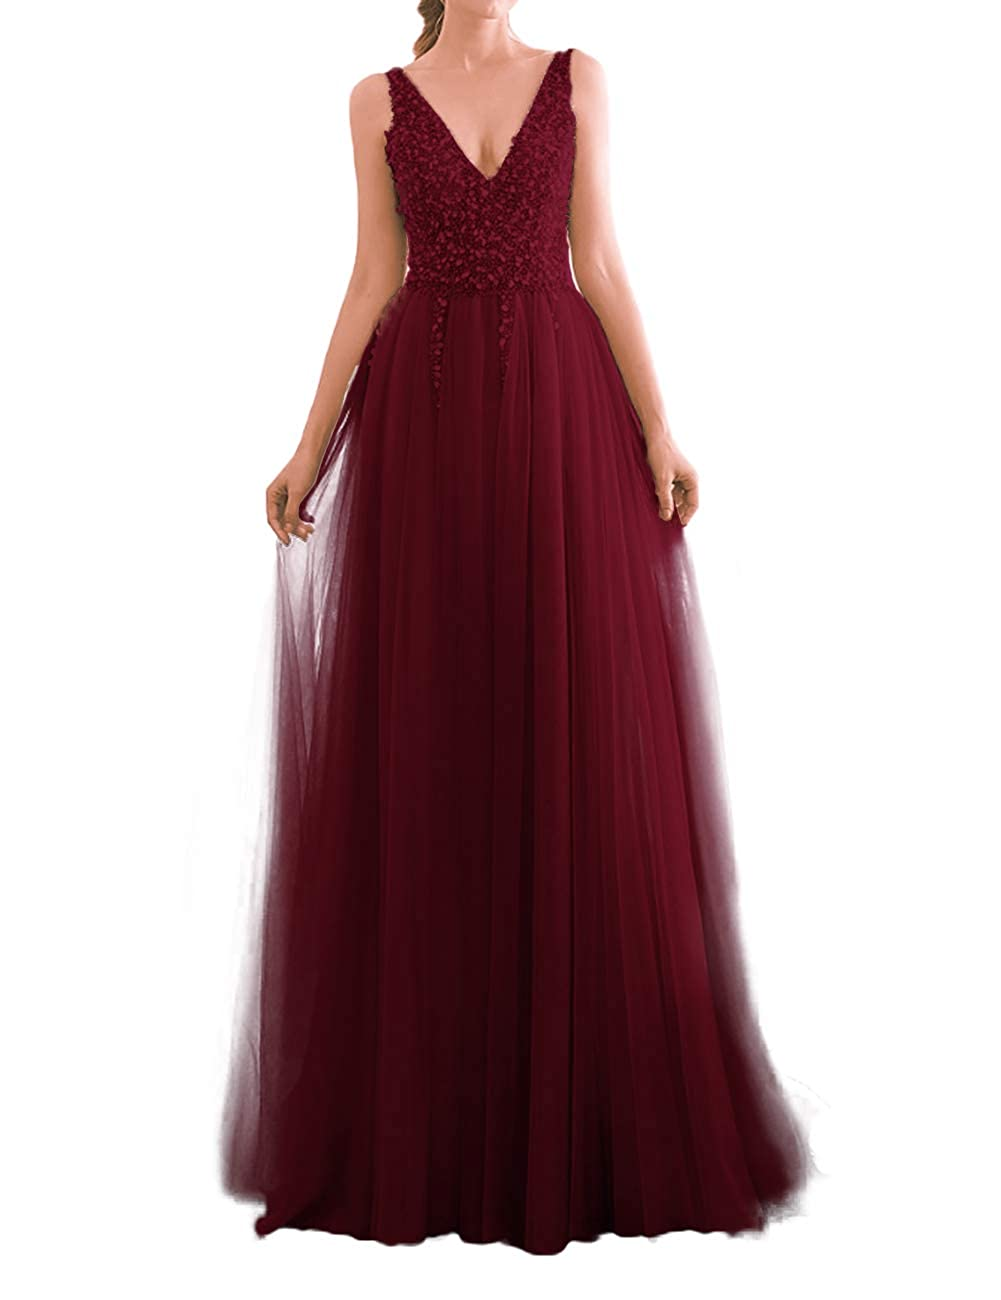 Burgundy JAEDEN Prom Dress Long Evening Dresses for Party Tulle V Neck Prom Dresses Evening Gowns